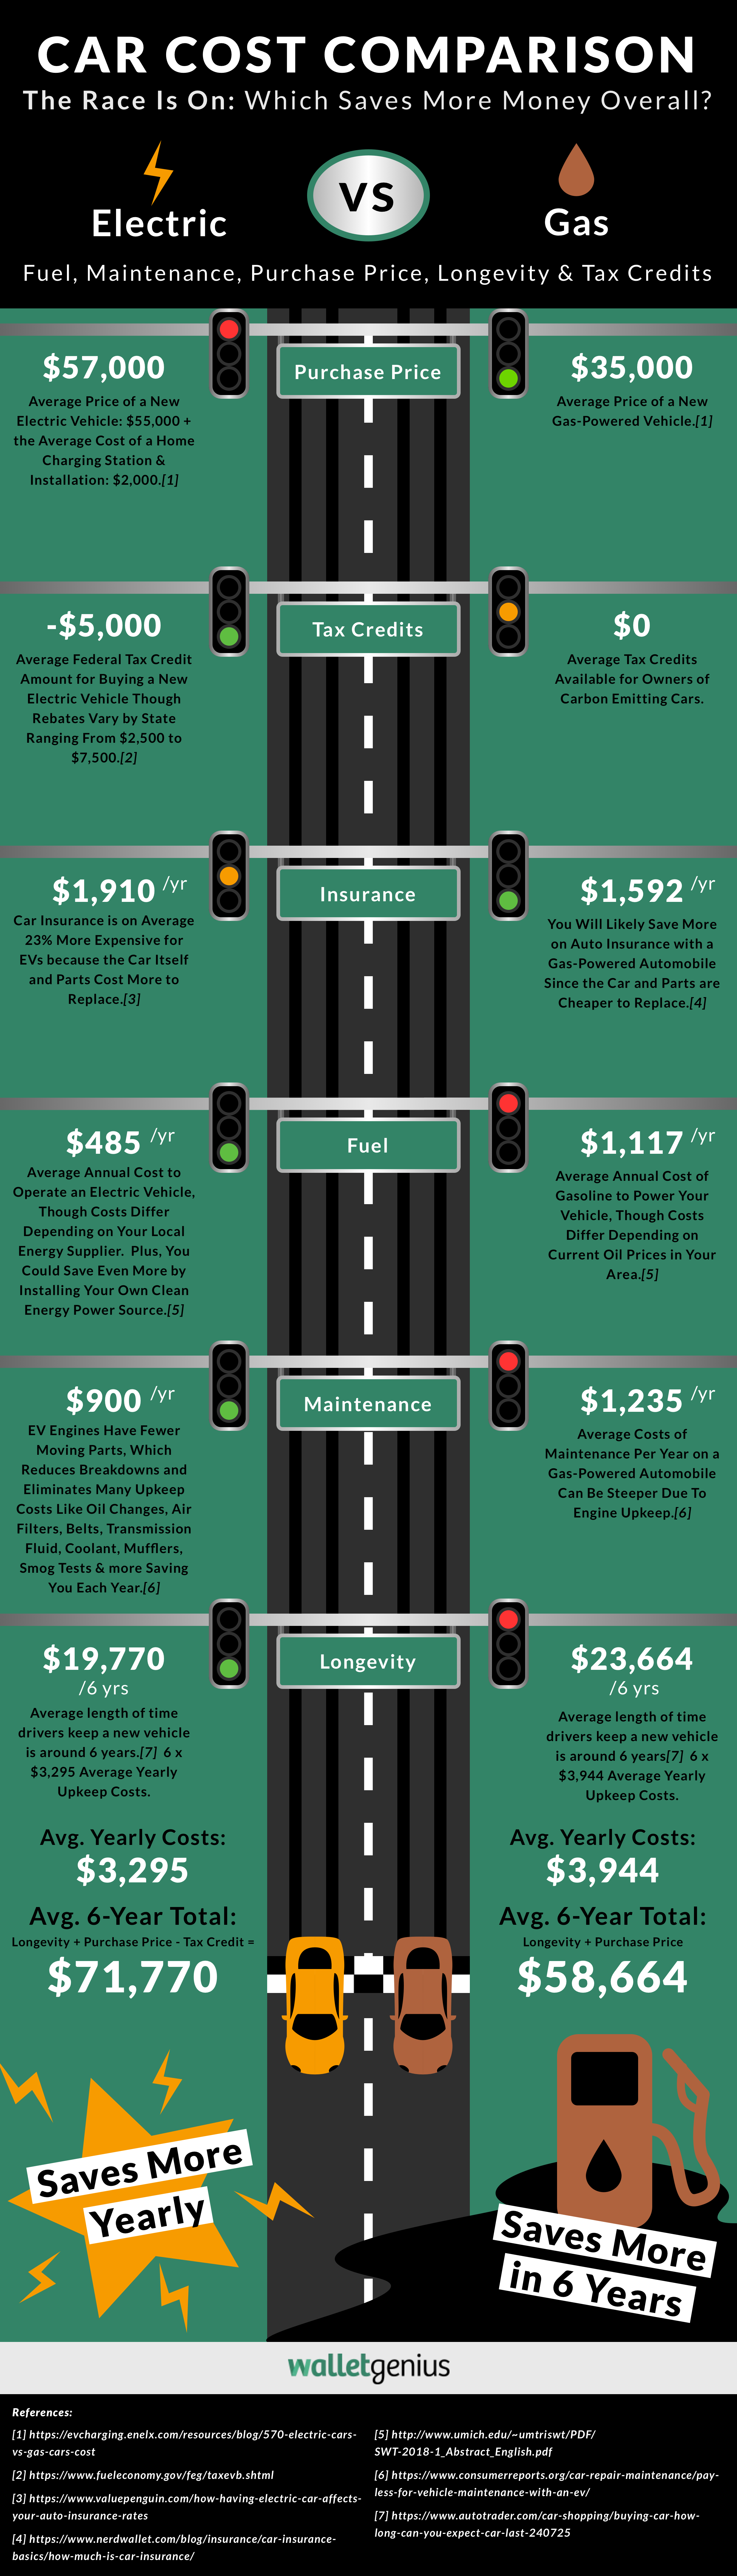 Electric Cars vs Gas Cars Infographic